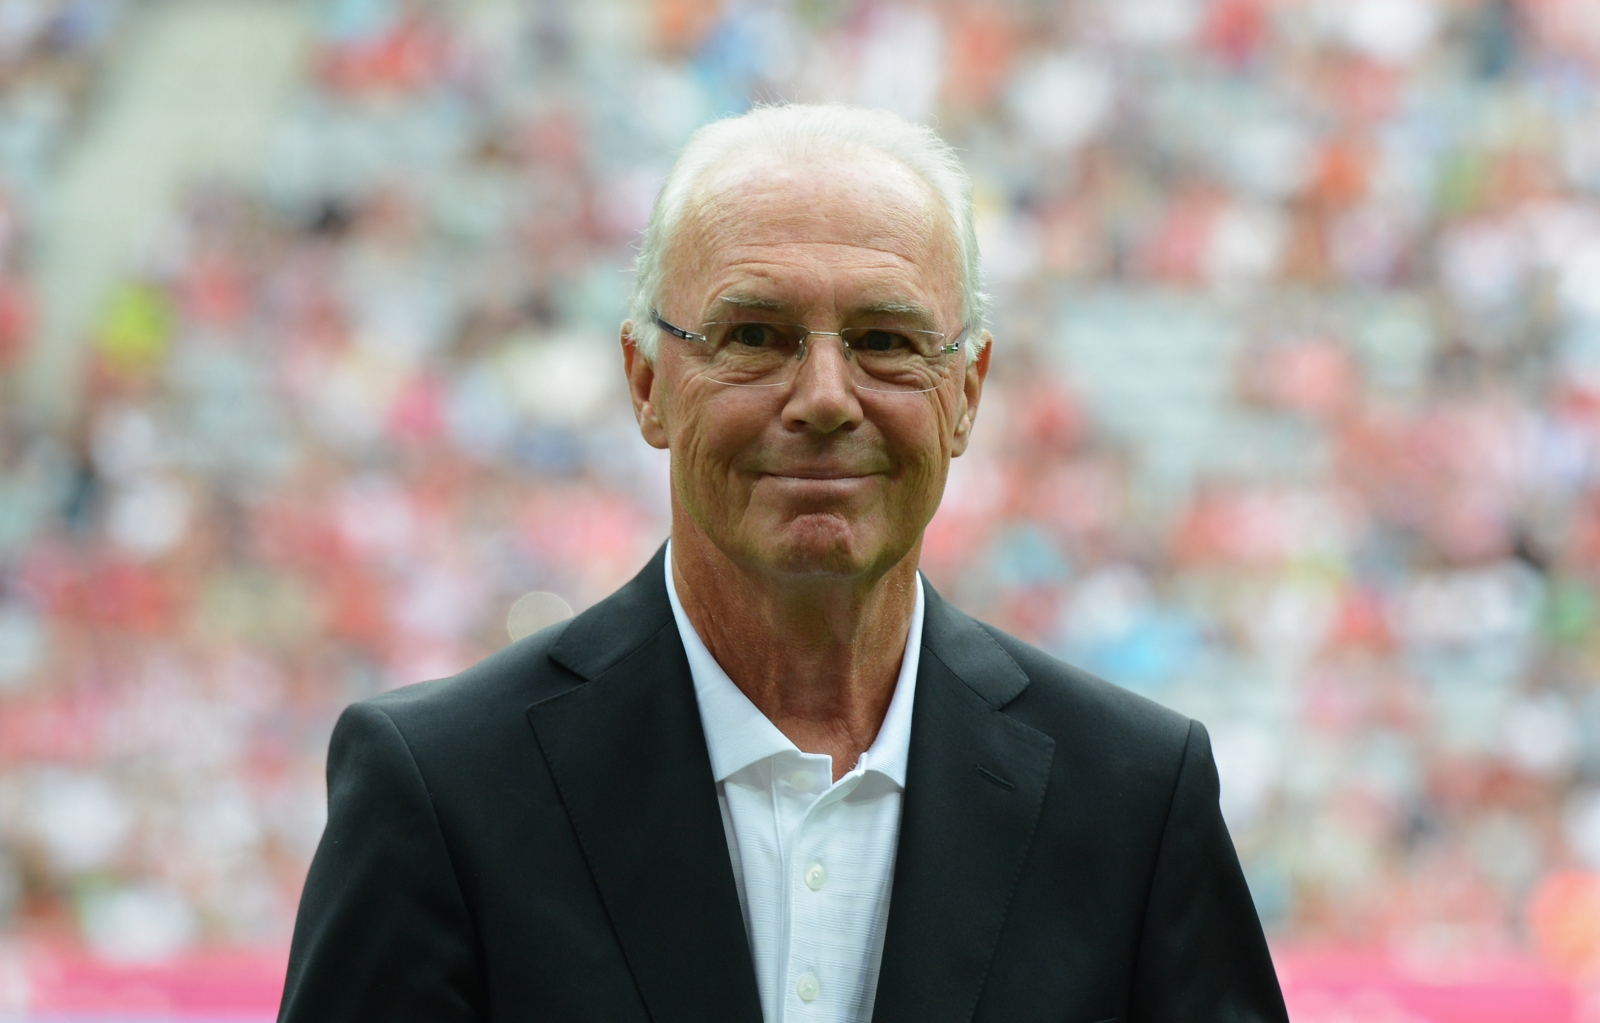 Franz Beckenbauer Drones will replace referees and we need to